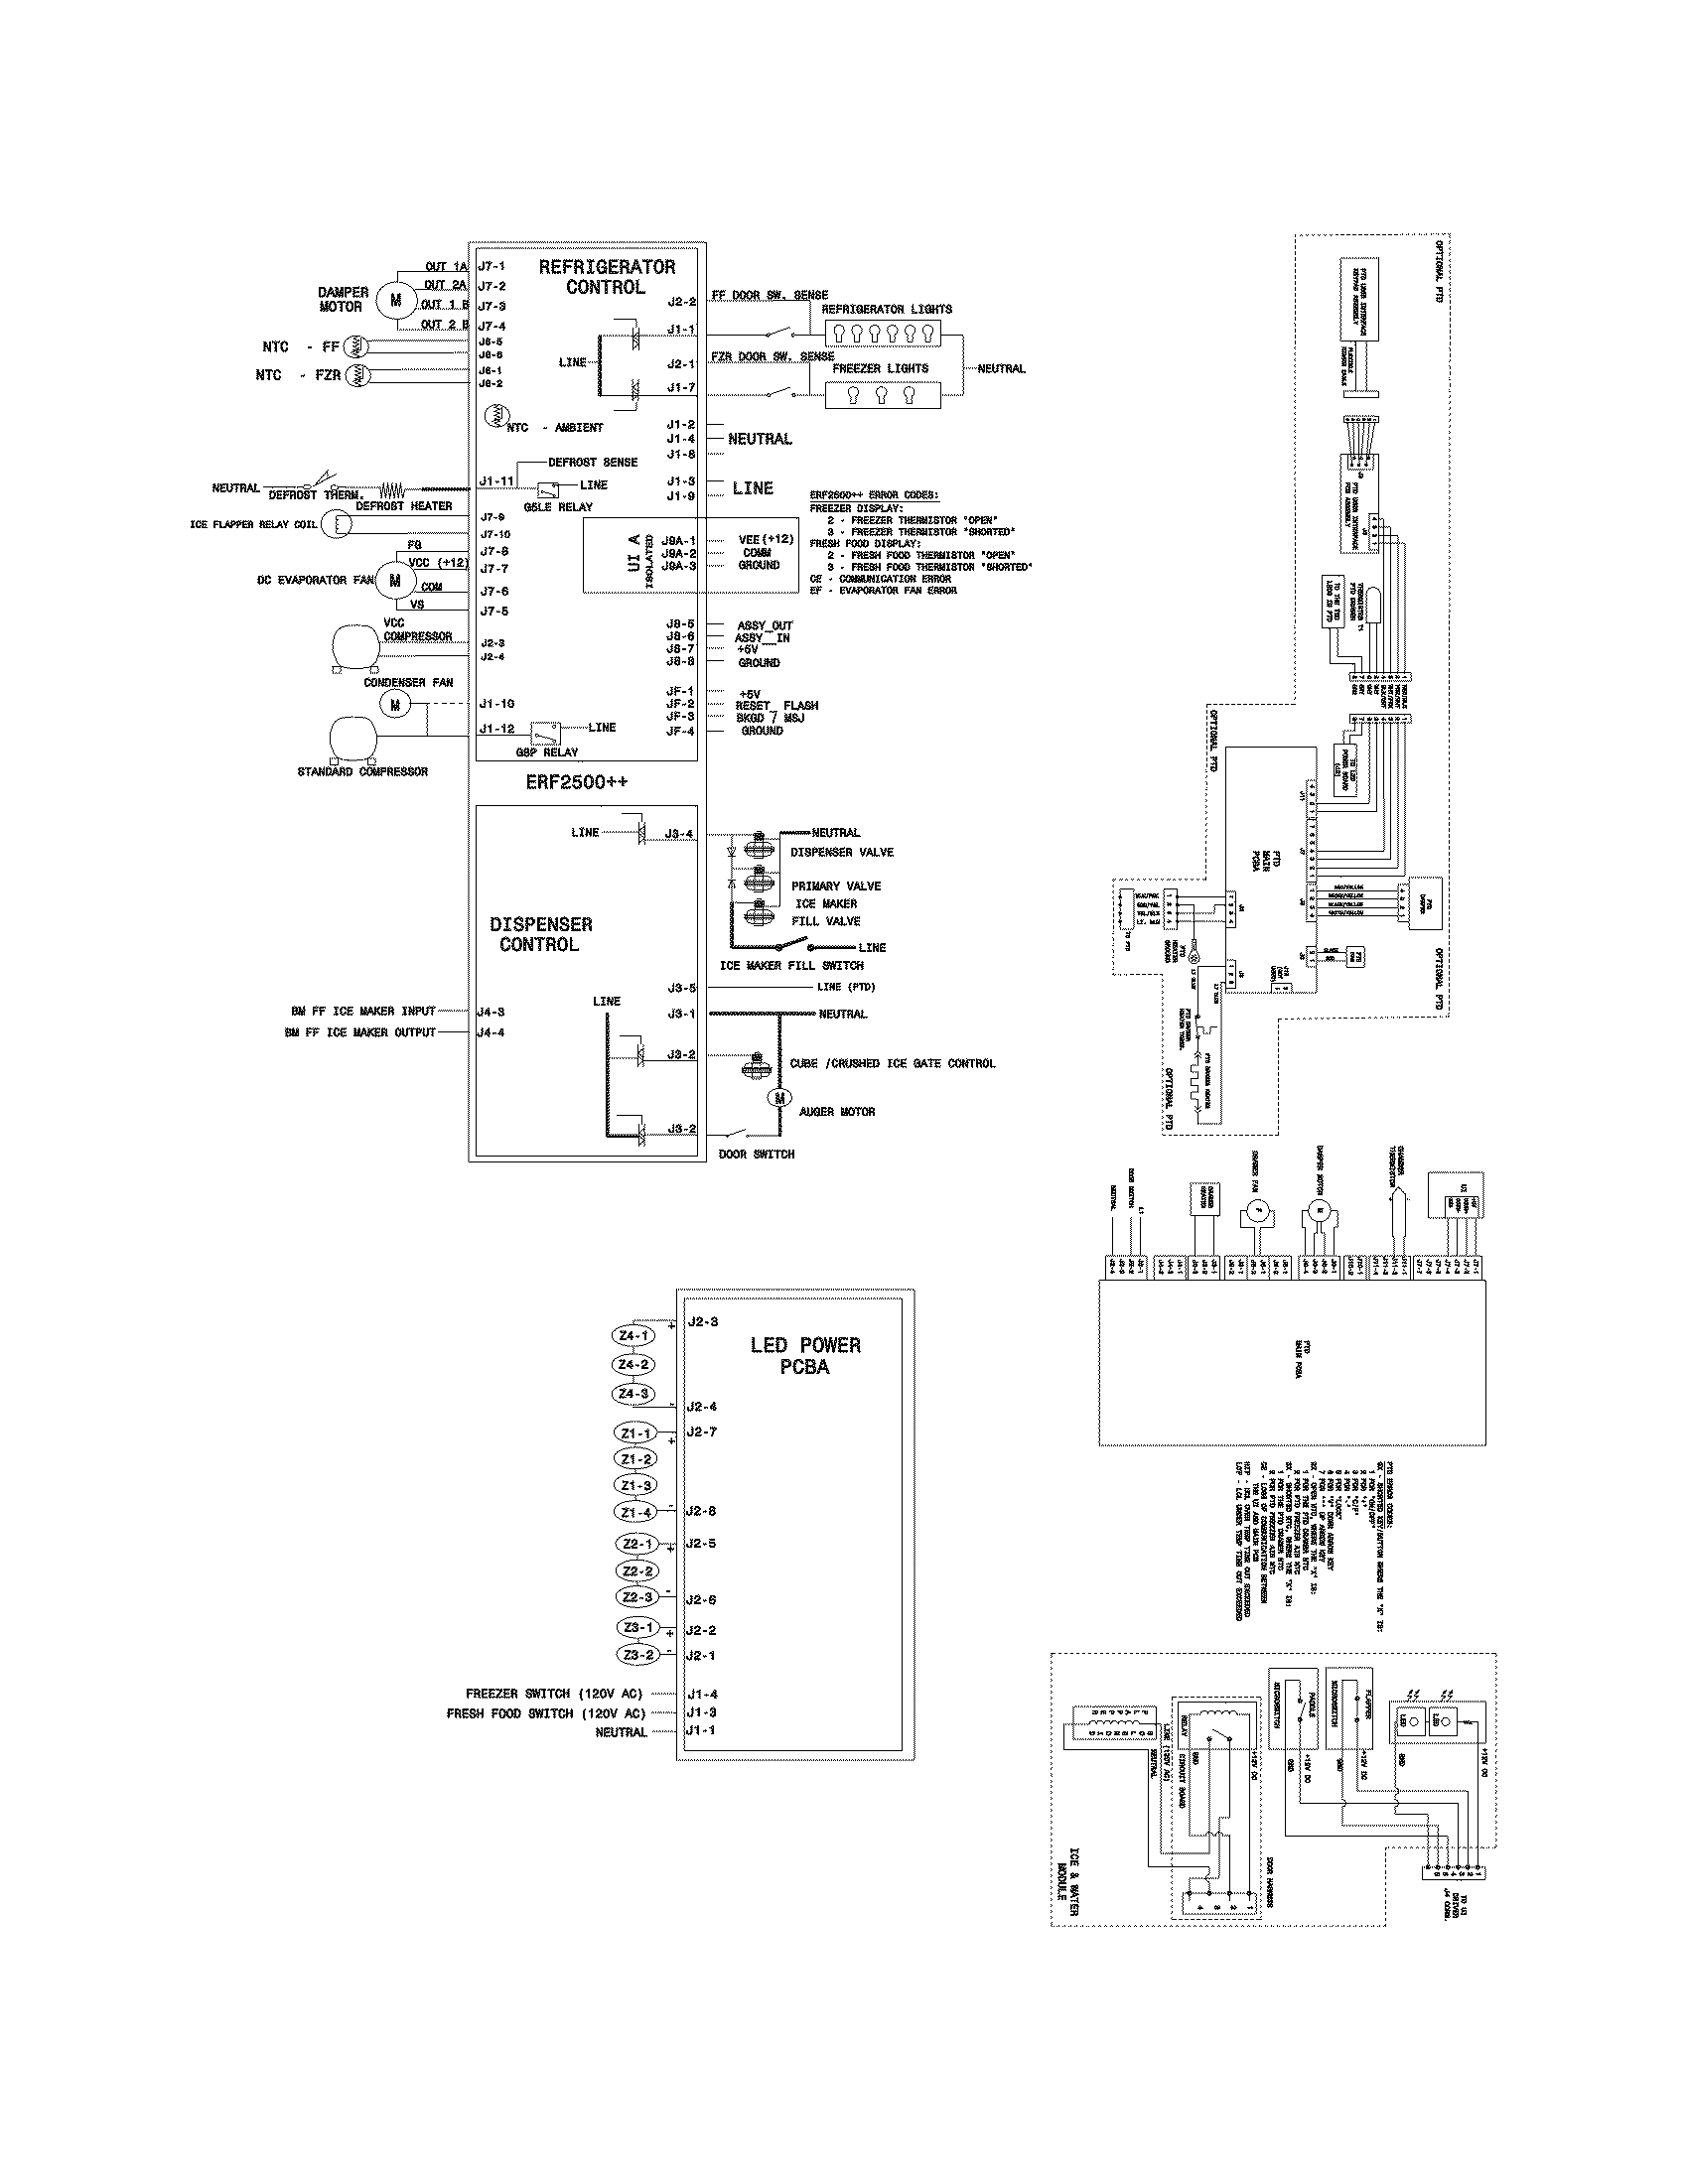 electrolux double door refrigerator wiring diagram thermostat diagrams 301 moved permanently